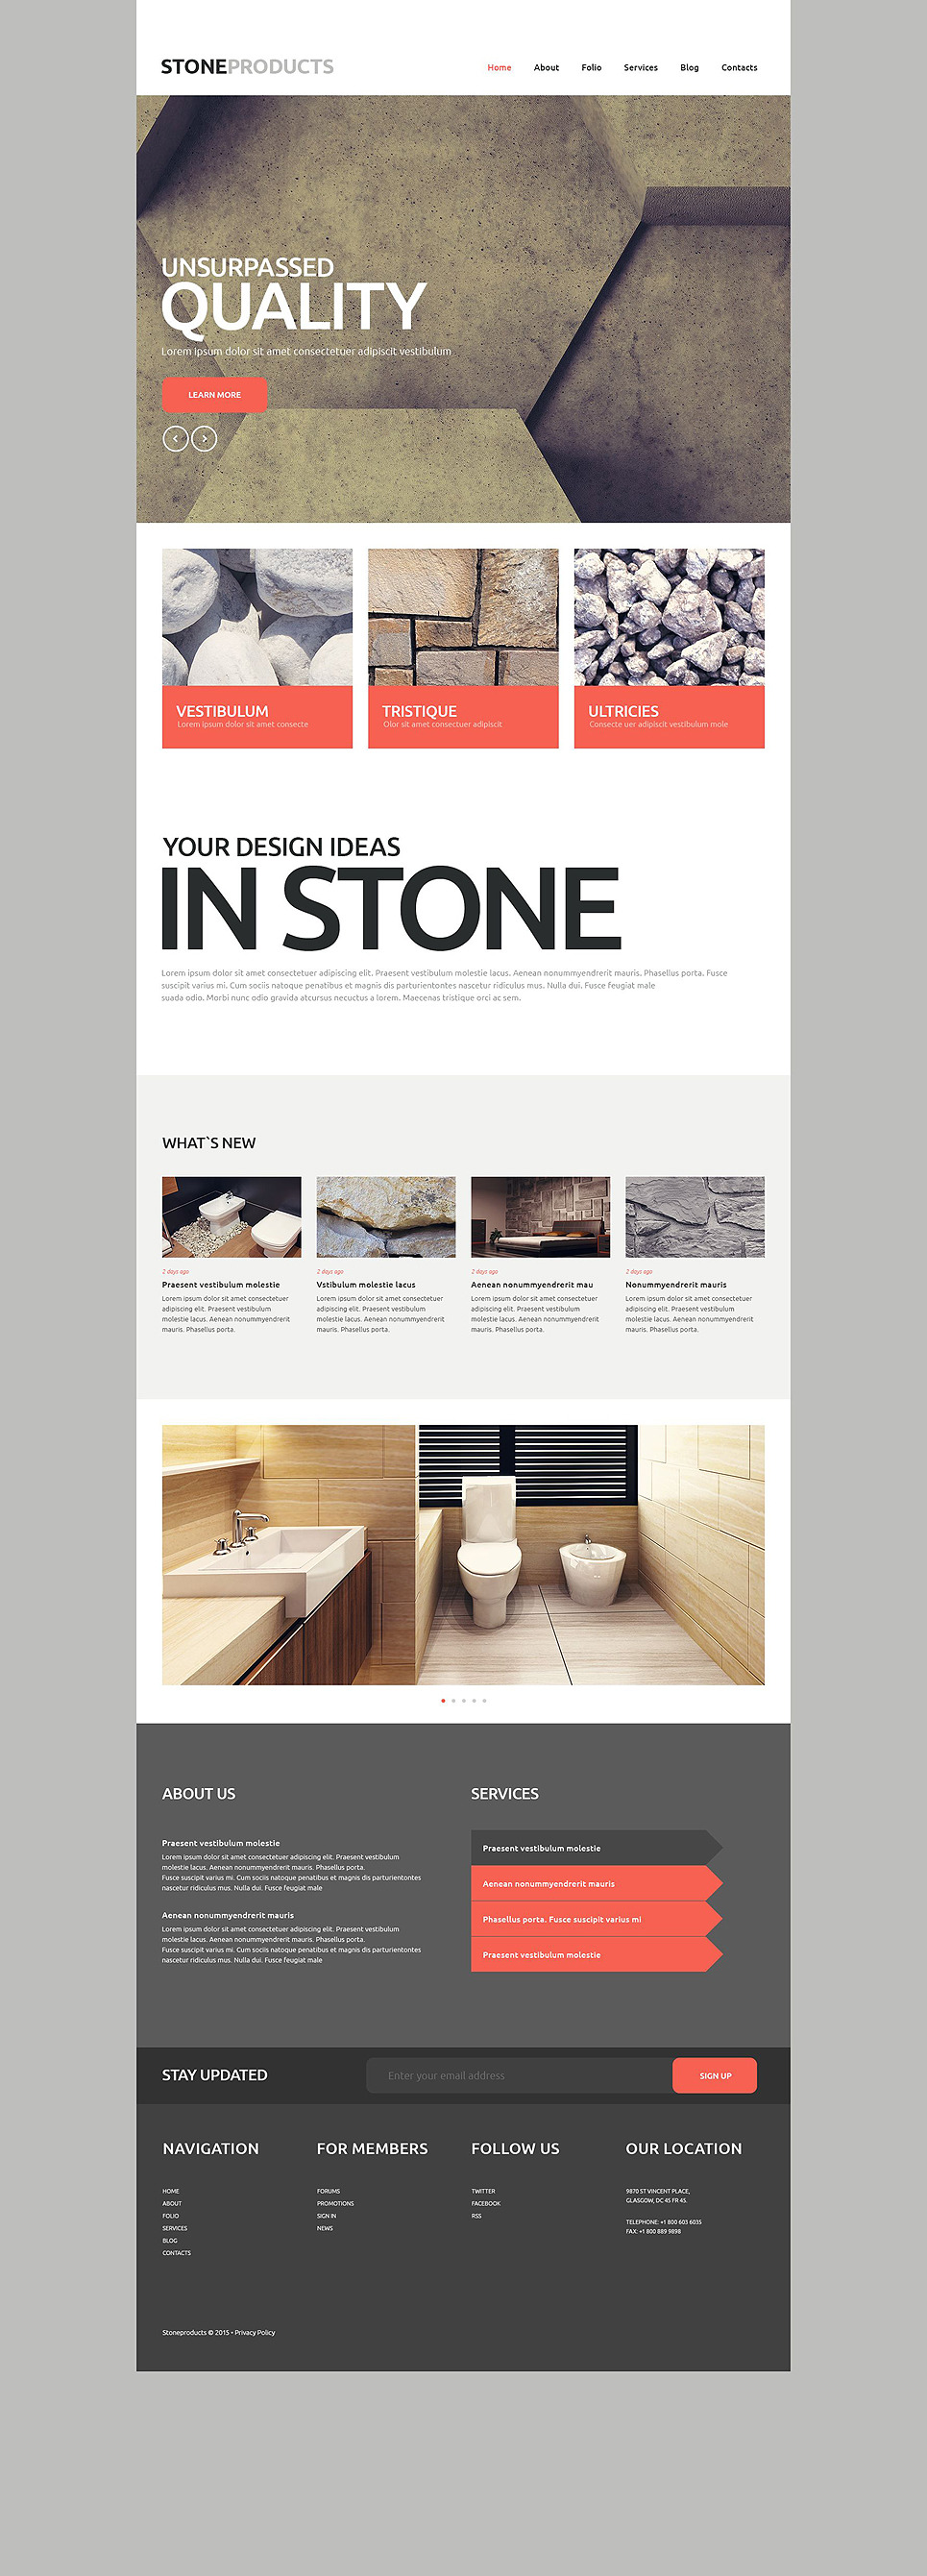 Flooring Products Website Template New Screenshots BIG